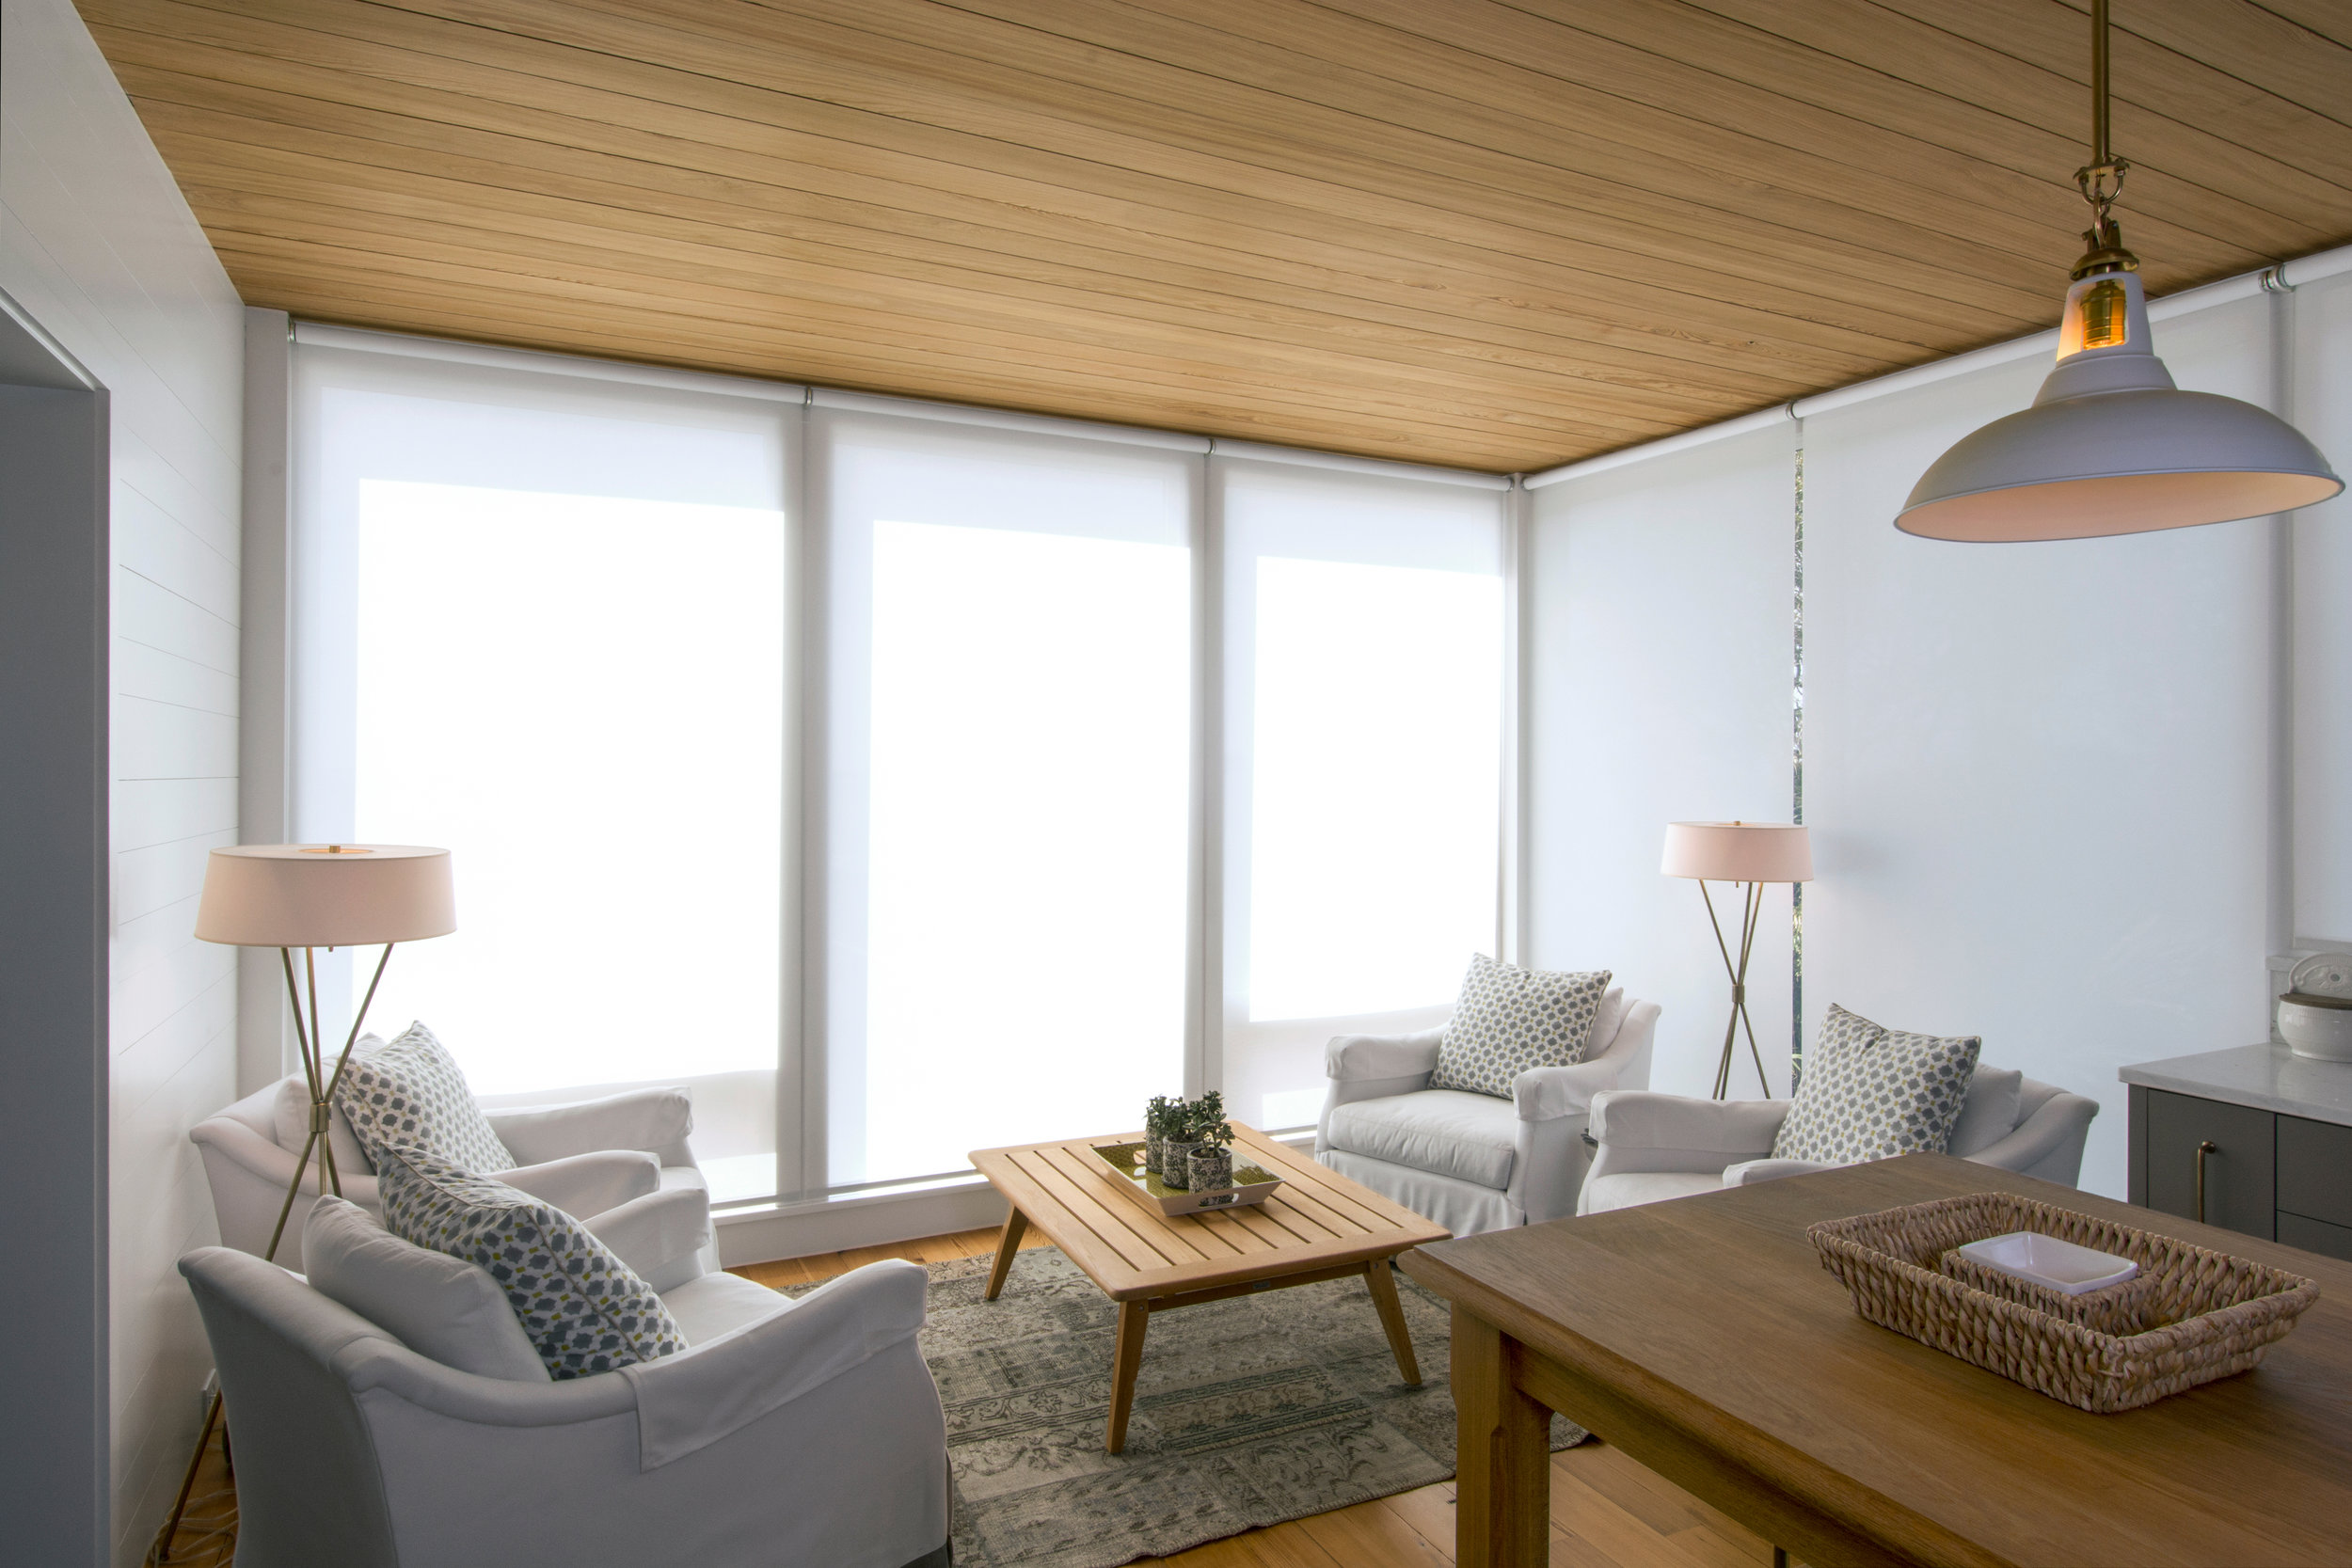 Room features a combination of jamb brackets (R1/R2) and coupler brackets (R5) to create a shade wall.